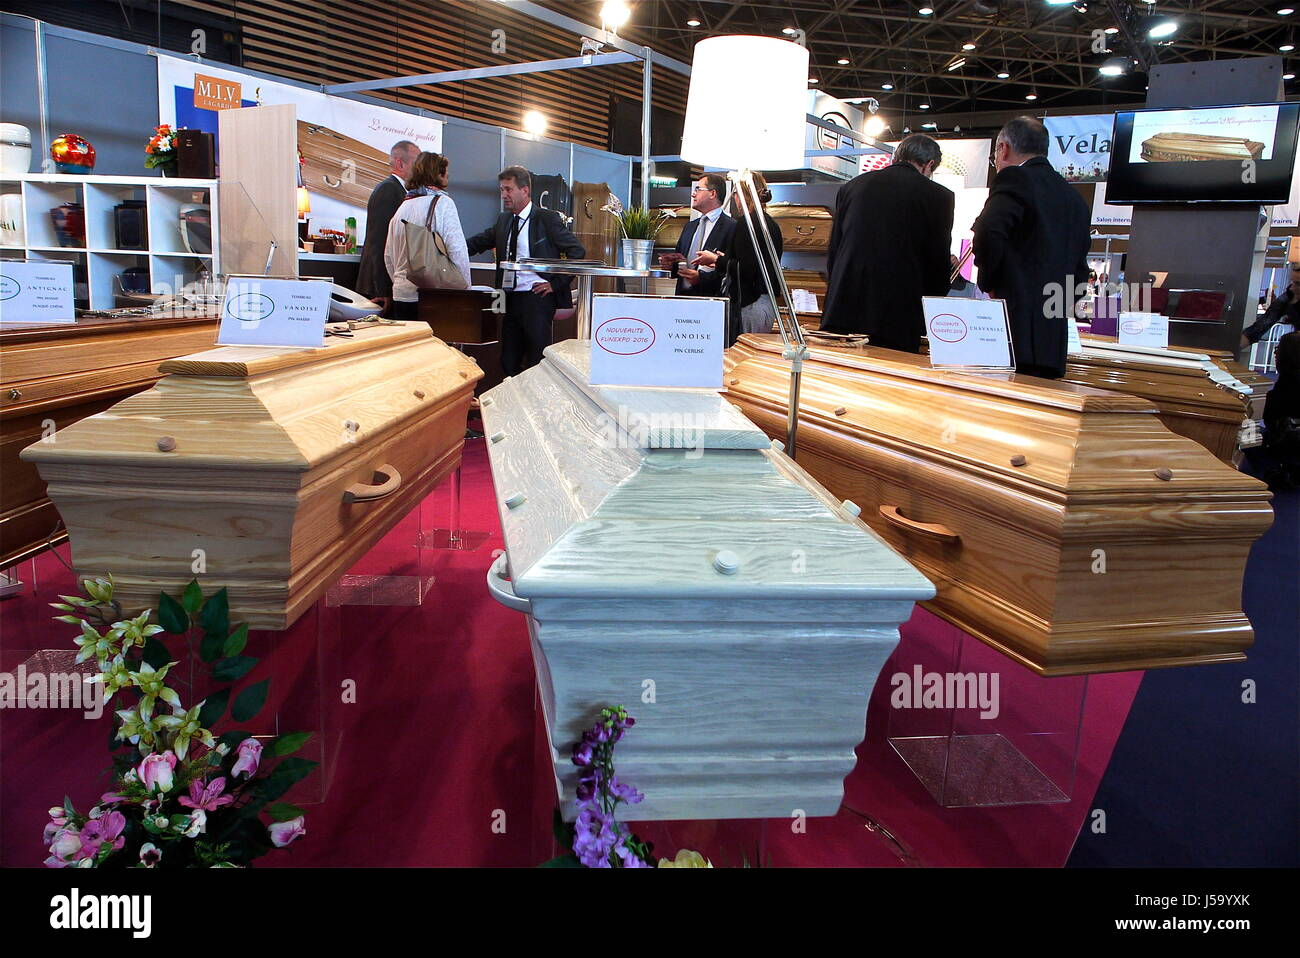 The funeral services industry